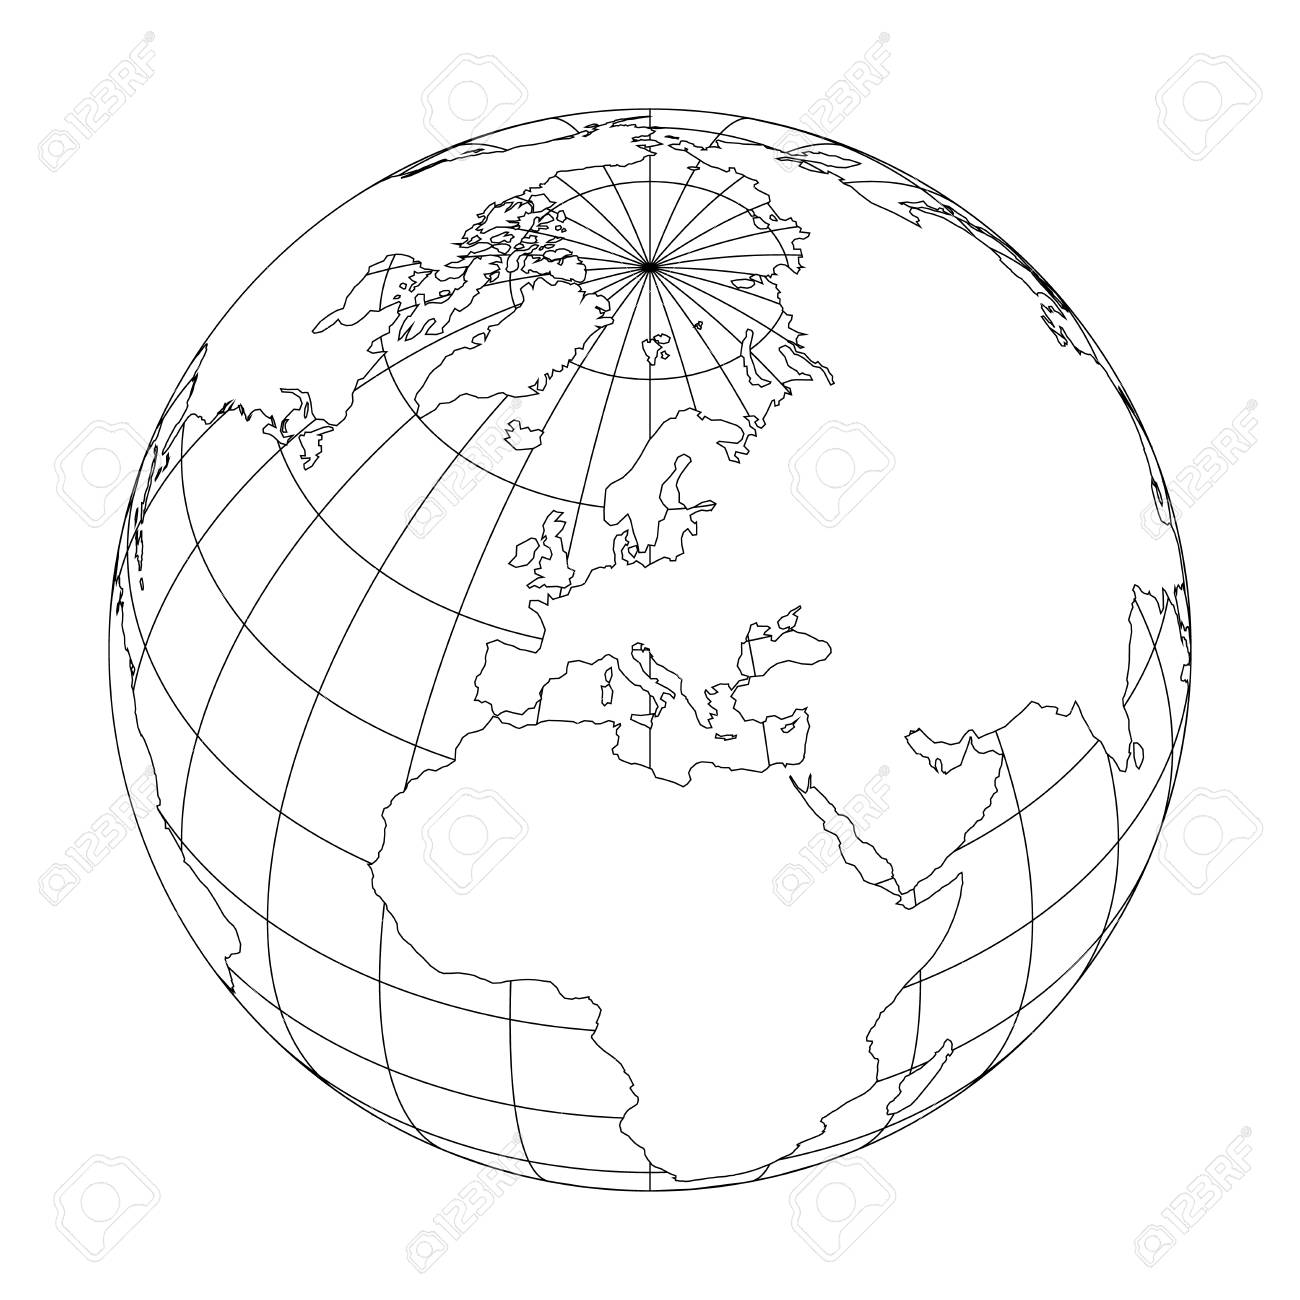 Outline Earth globe with map of World focused on Europe. Vector illustration. - 94063353